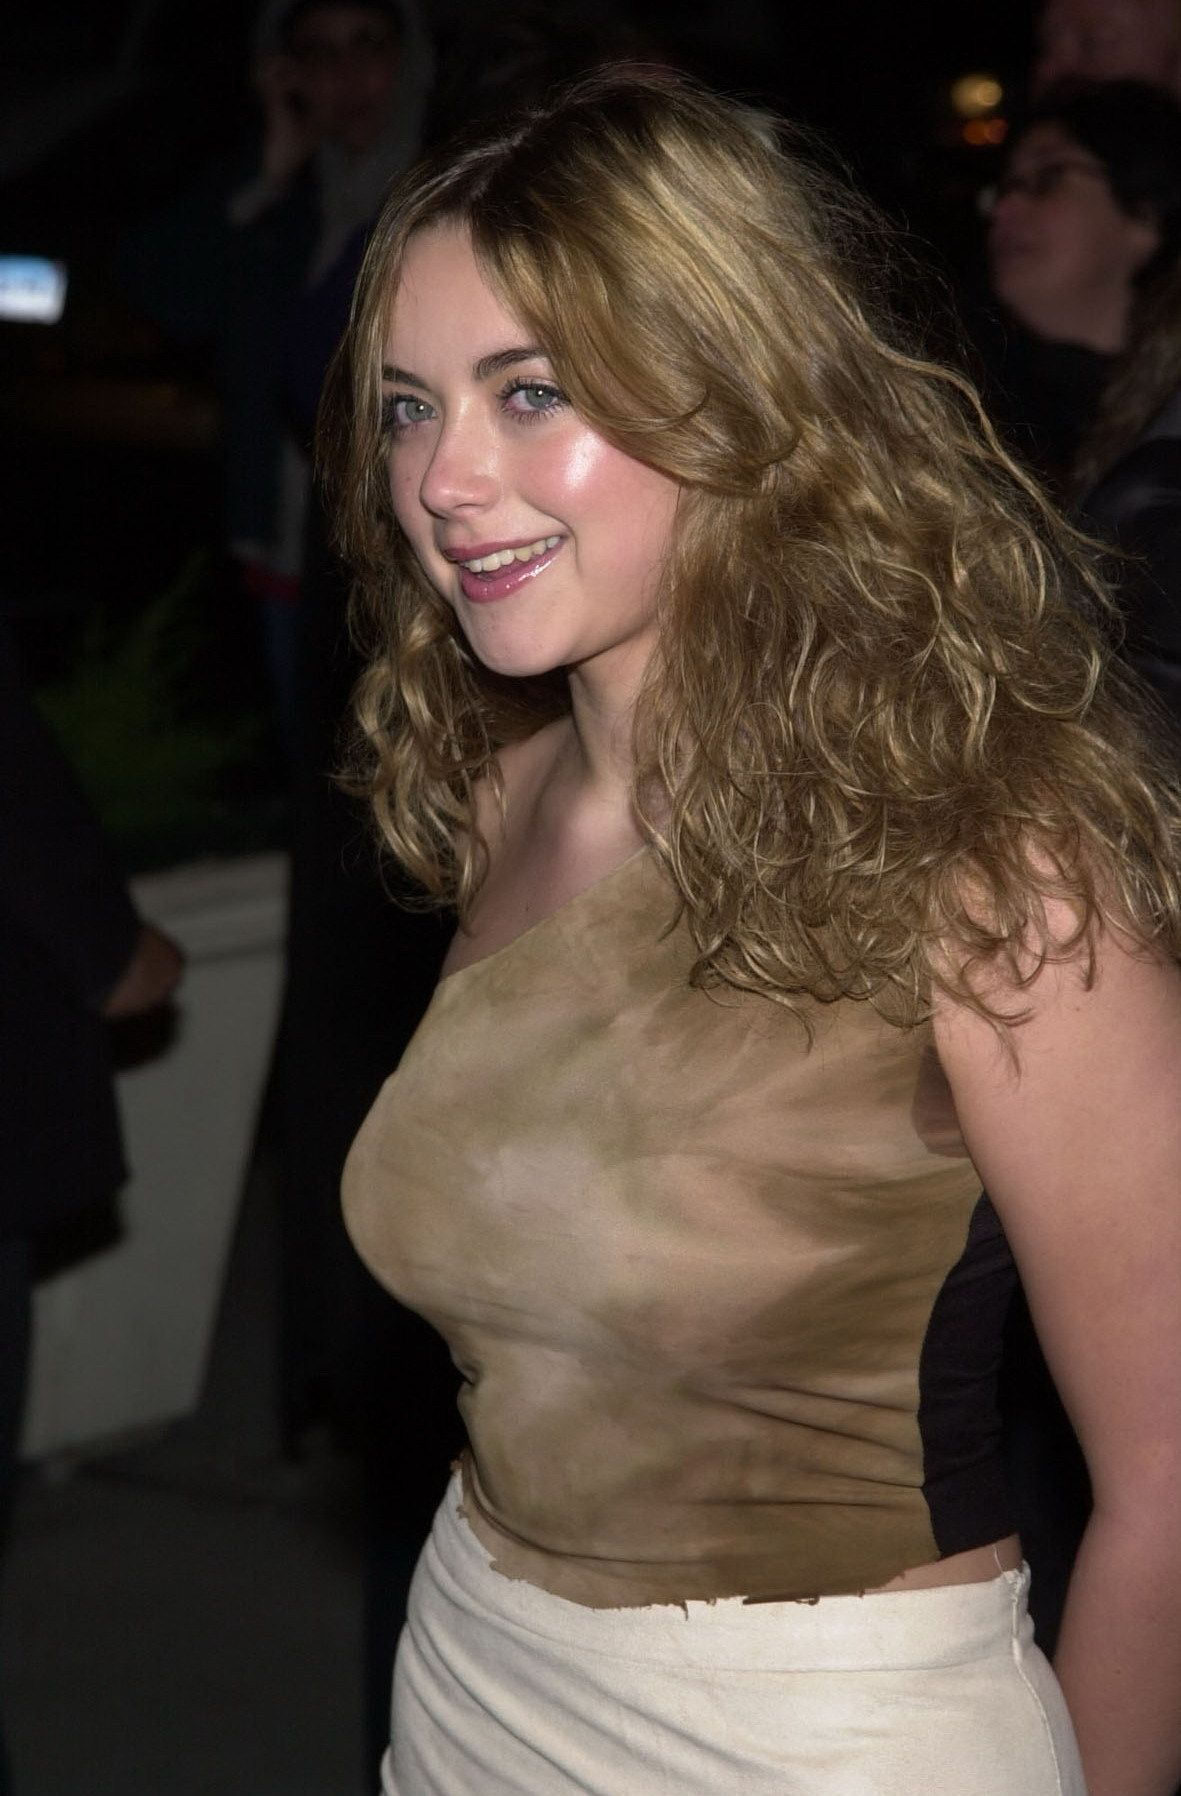 Discussion on this topic: Annabelle Moore, charlotte-church/